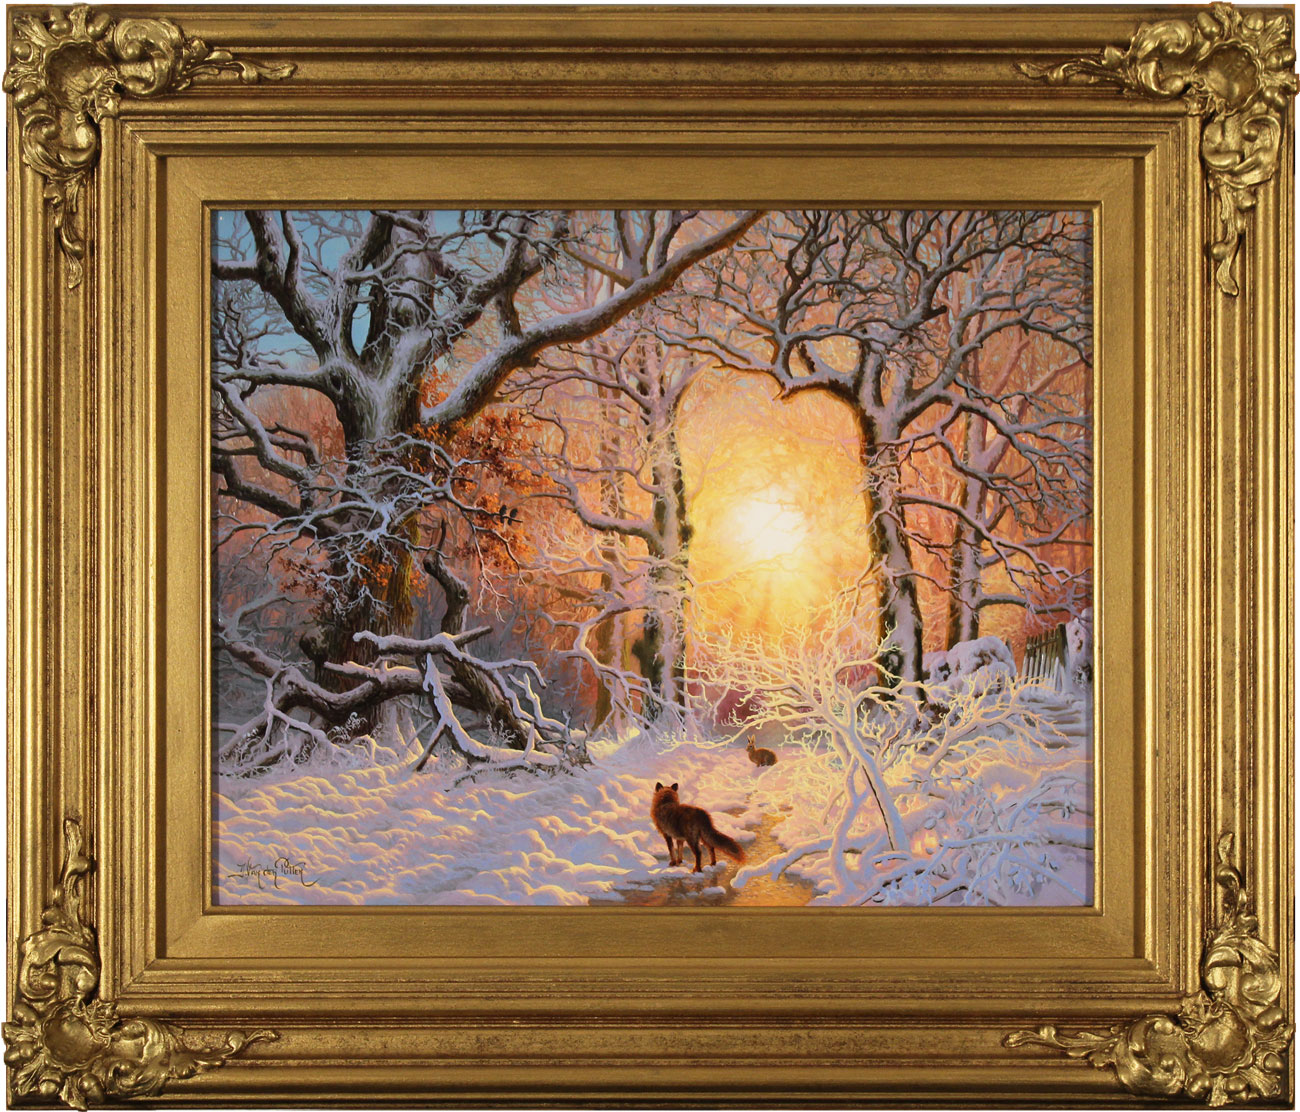 Daniel Van Der Putten, Original oil painting on panel, Fox in Mantles Heath Wood, click to enlarge